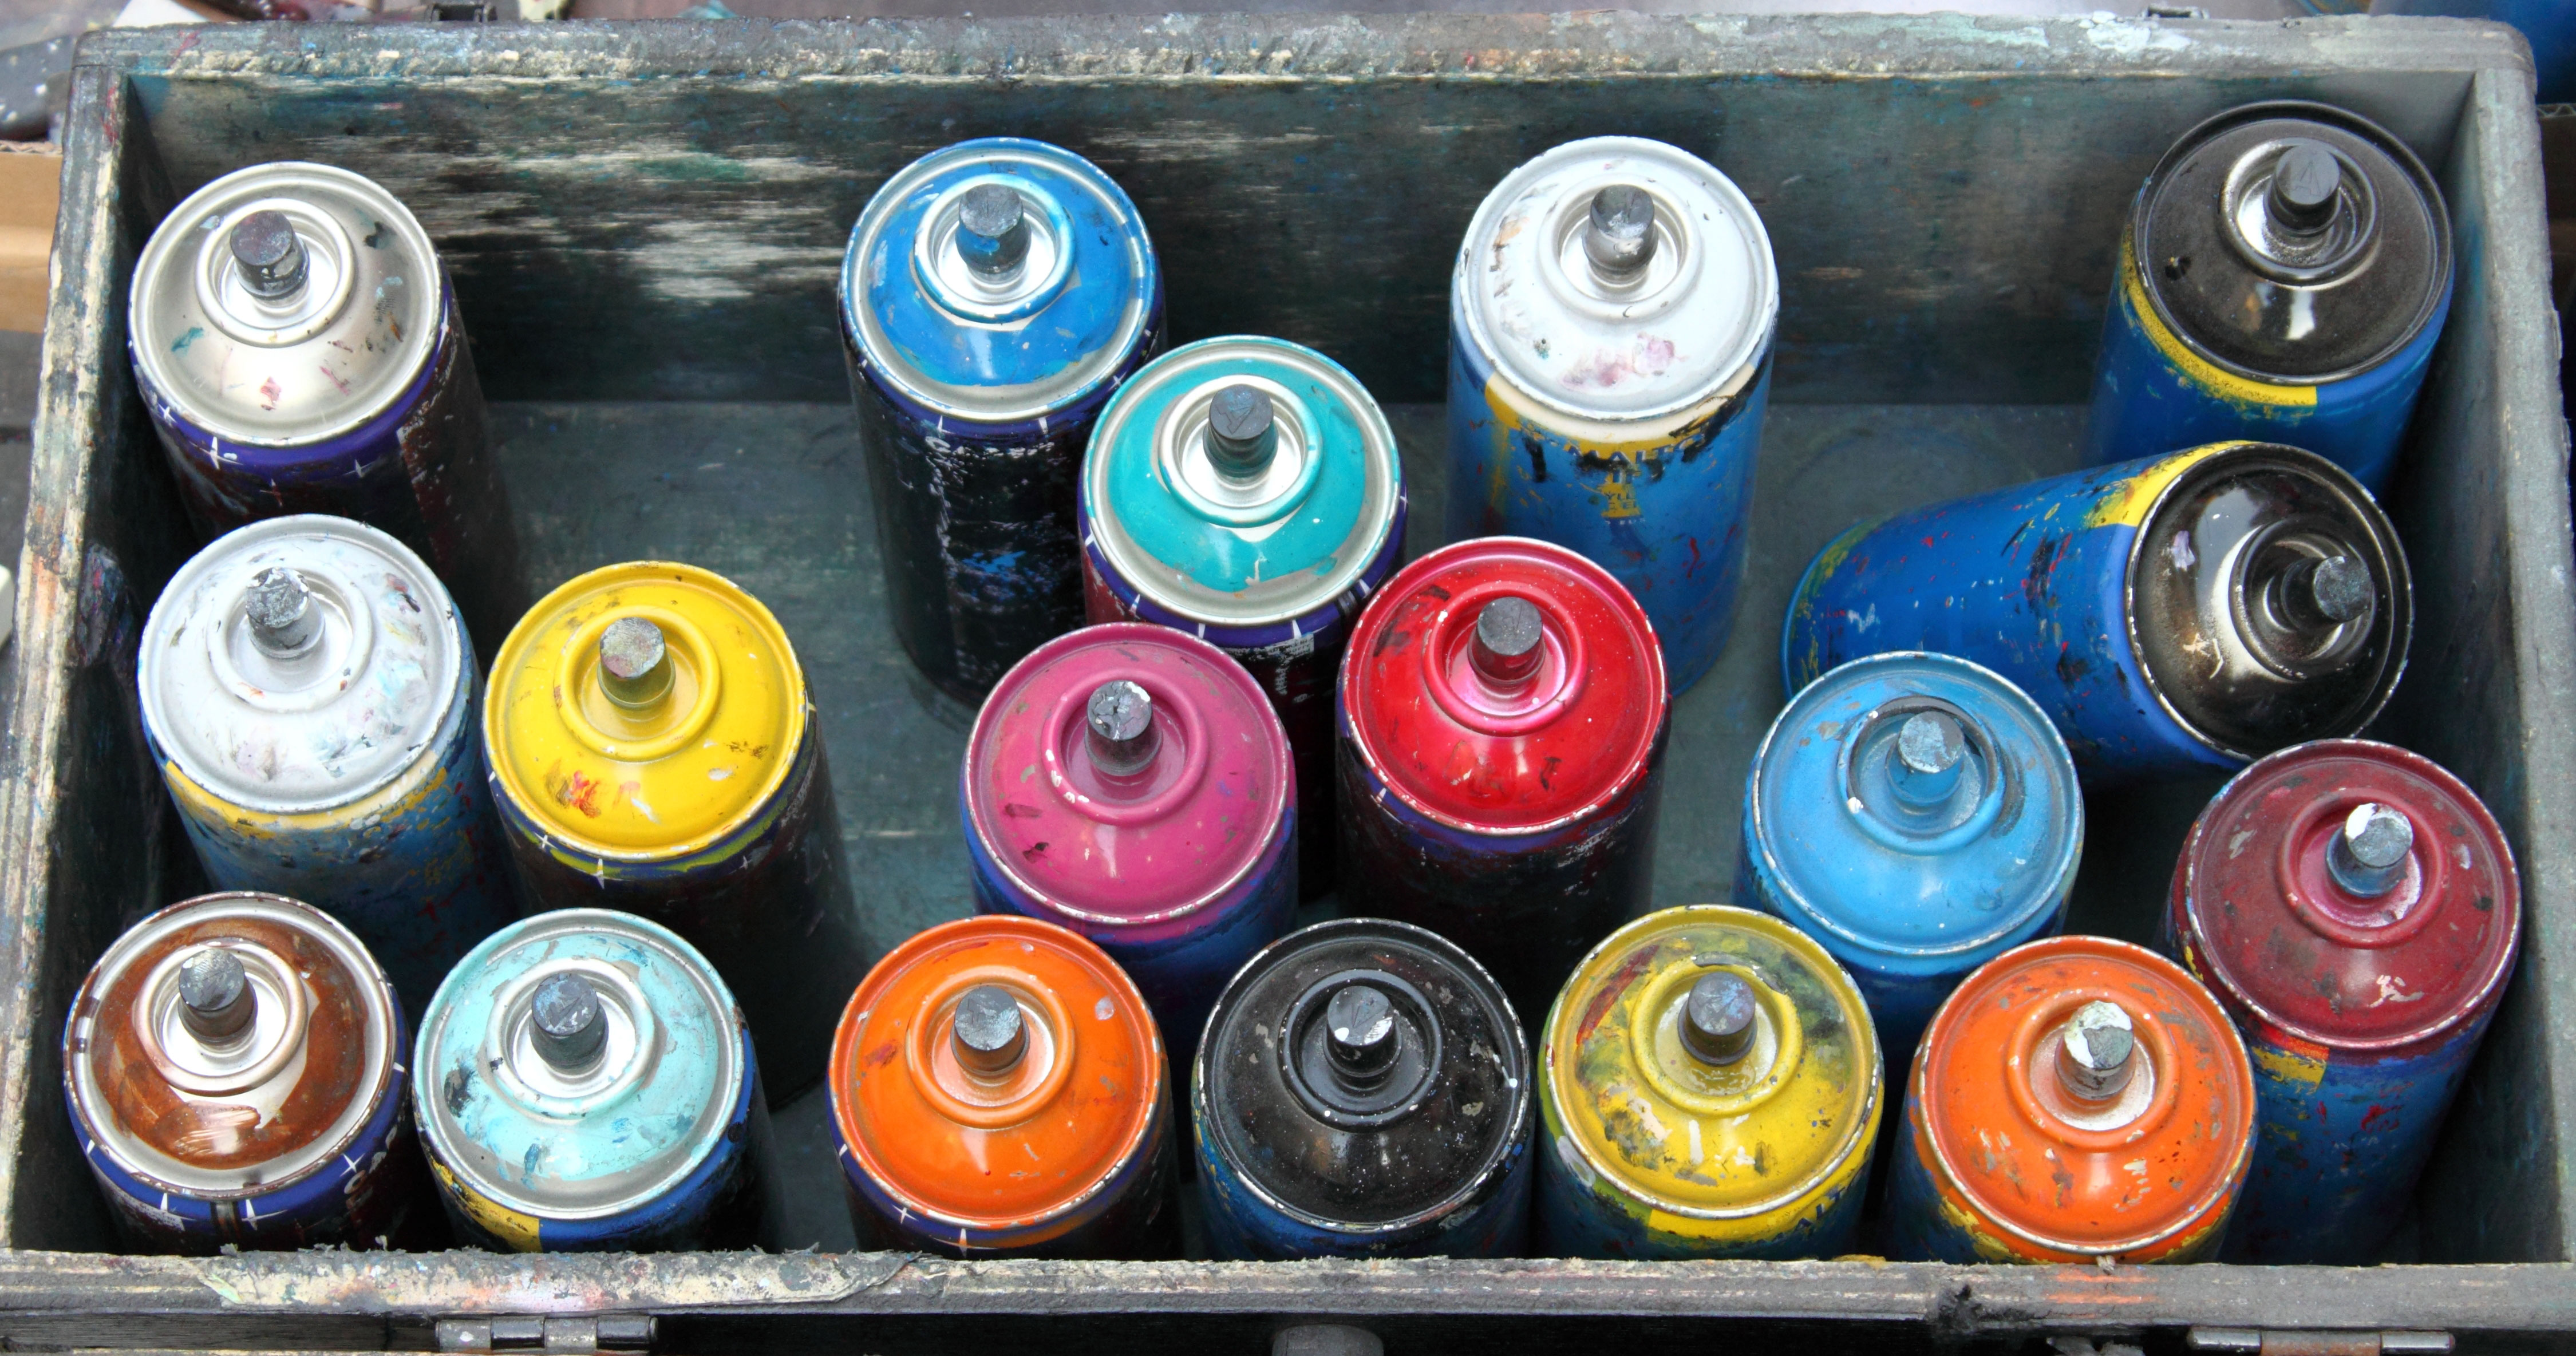 co-mingled recycling curbside pick-up paint cans